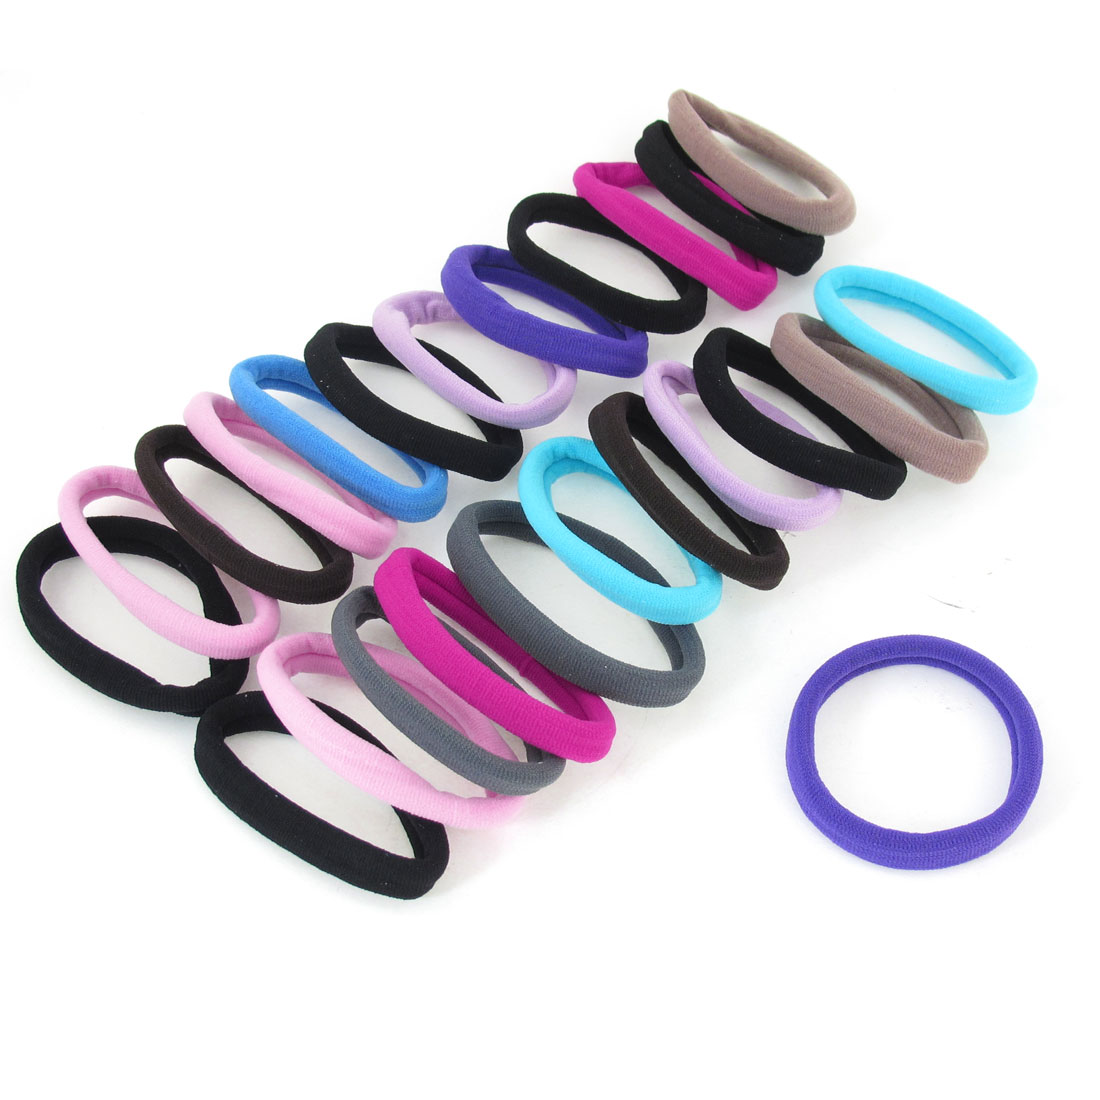 "Multicolor Ponytail Holders 0.4"" Wide Ealstic Hair Bands Tie 24 Pcs"